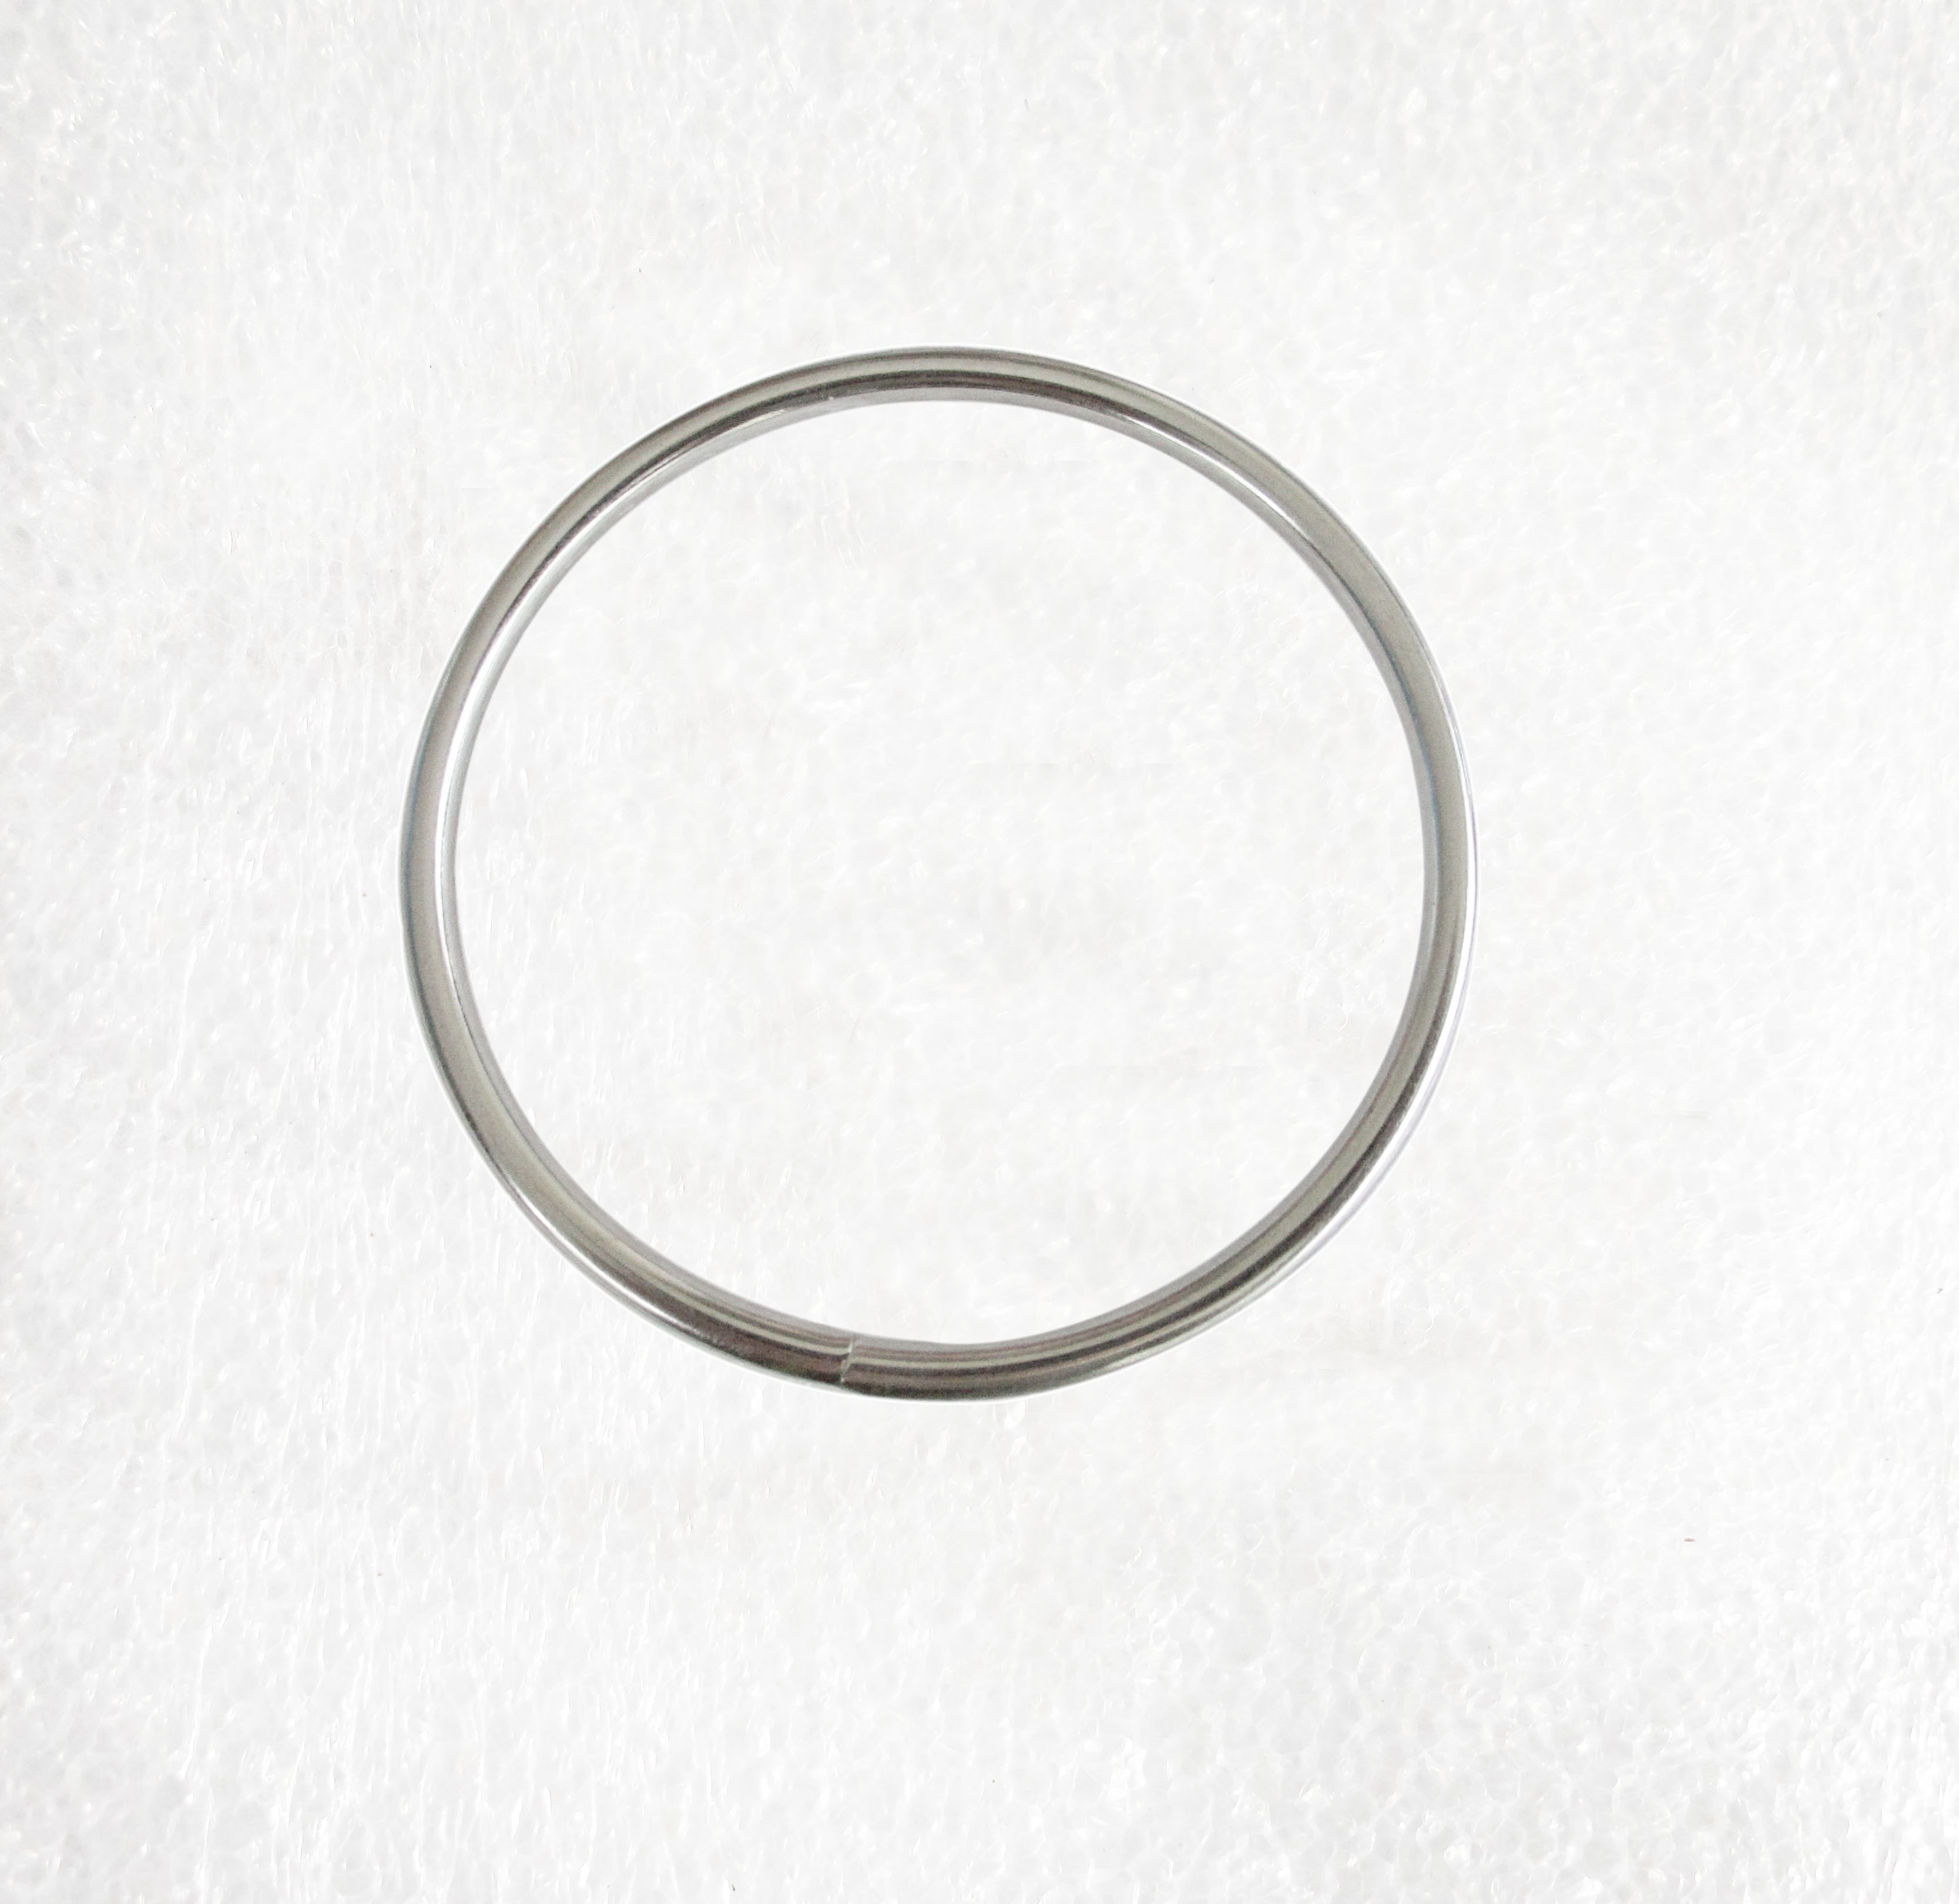 and buckles Metal Dee Rings unwelded silver 38x25mm for straps